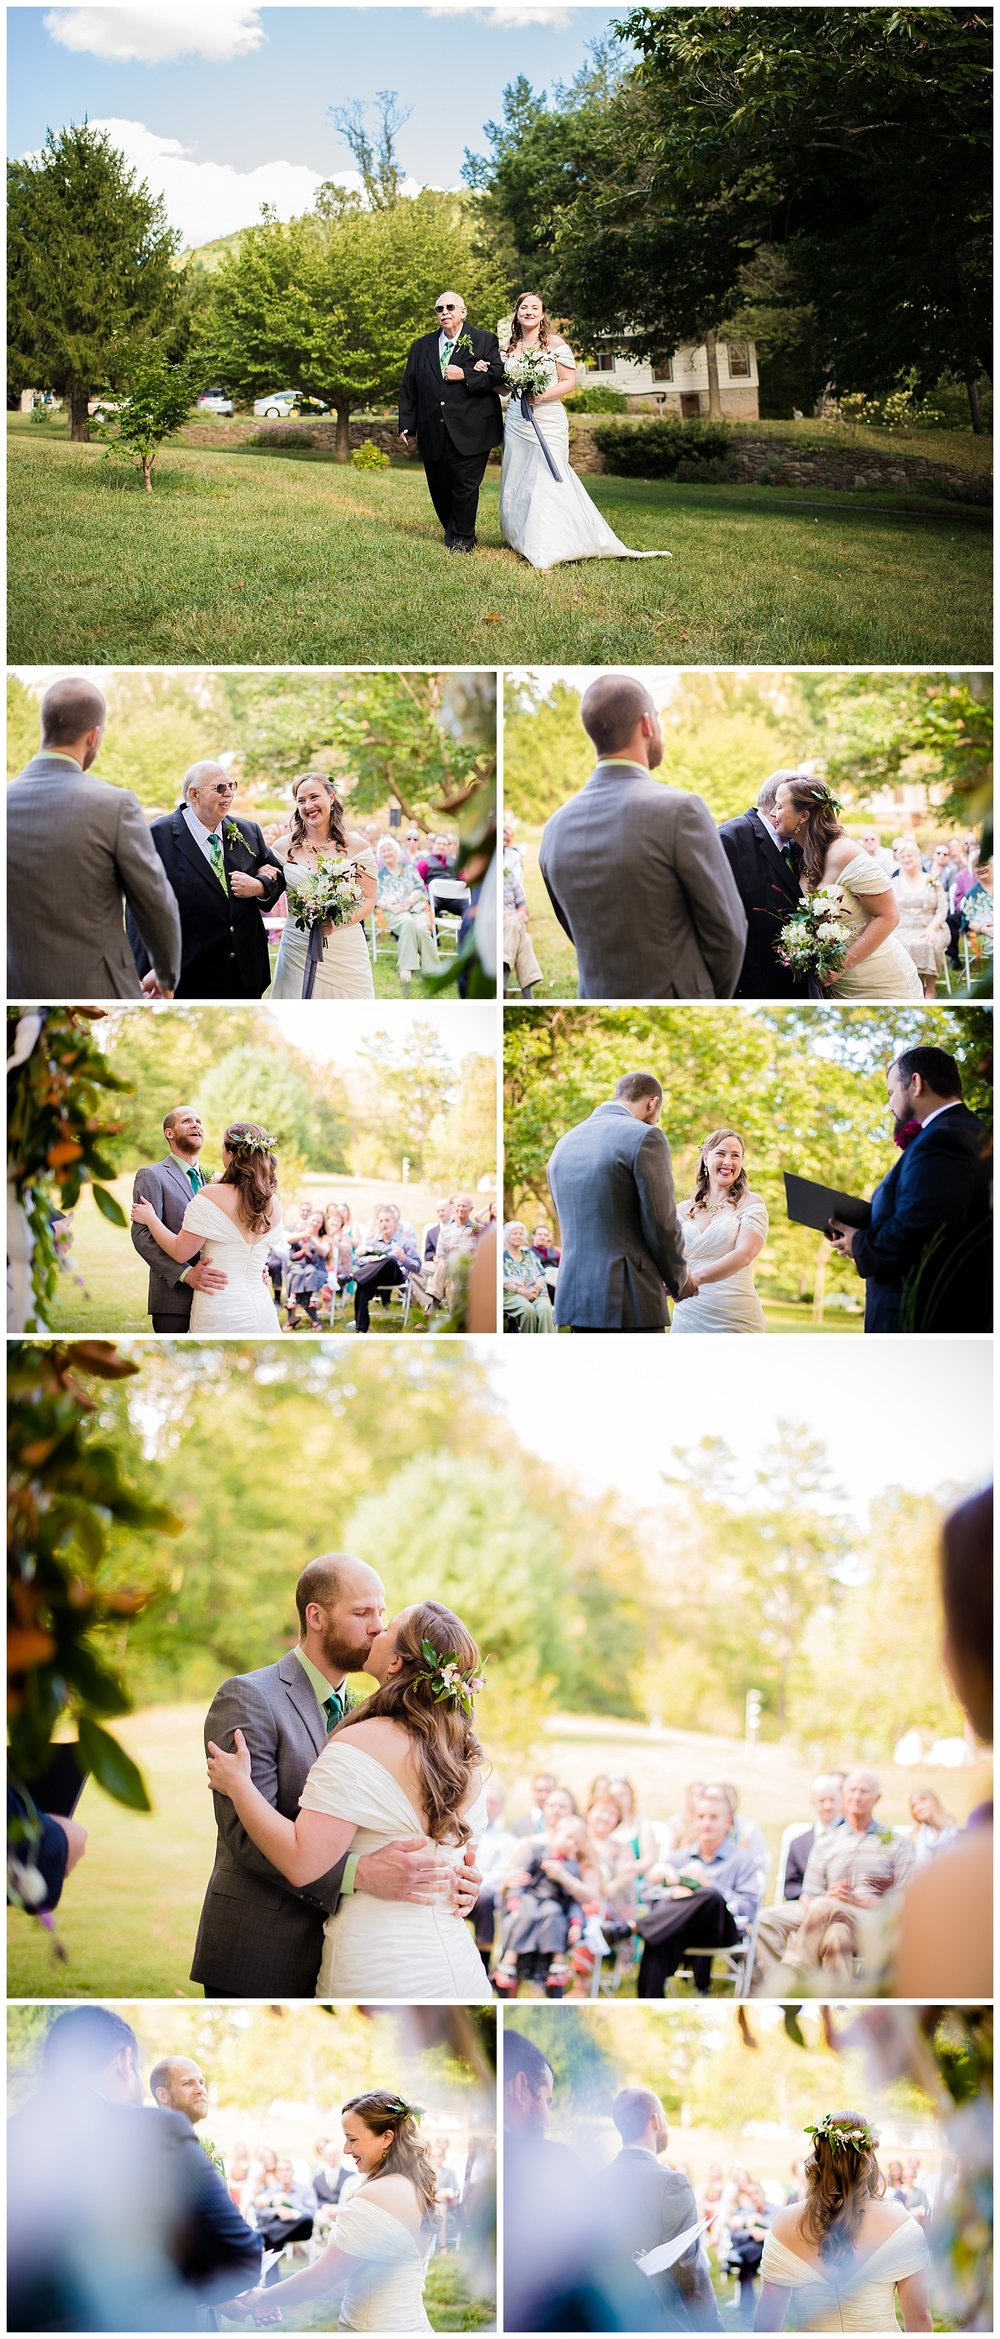 Mountain-Ceremony-Bull-Creek-Ranch-Asheville-North-Carolina-Father-Walking-Bride-Down-Aisle-October-Fall-Wedding-First-Kiss-Bride-Groom